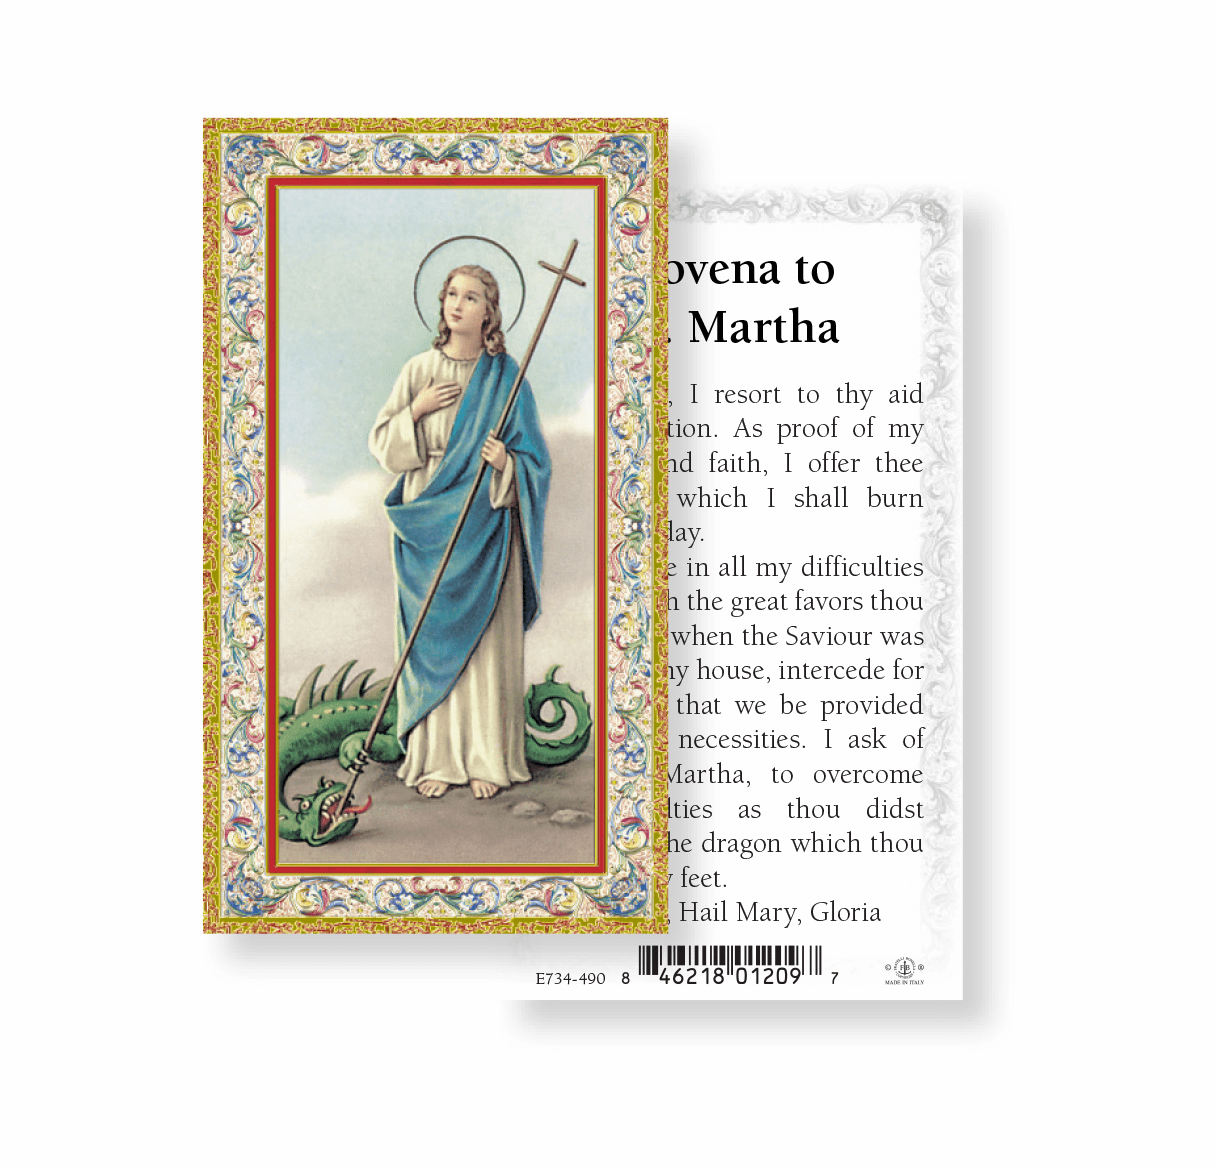 St Martha Patron Saint Holy Cards 100pcs by Fratelli Bonella